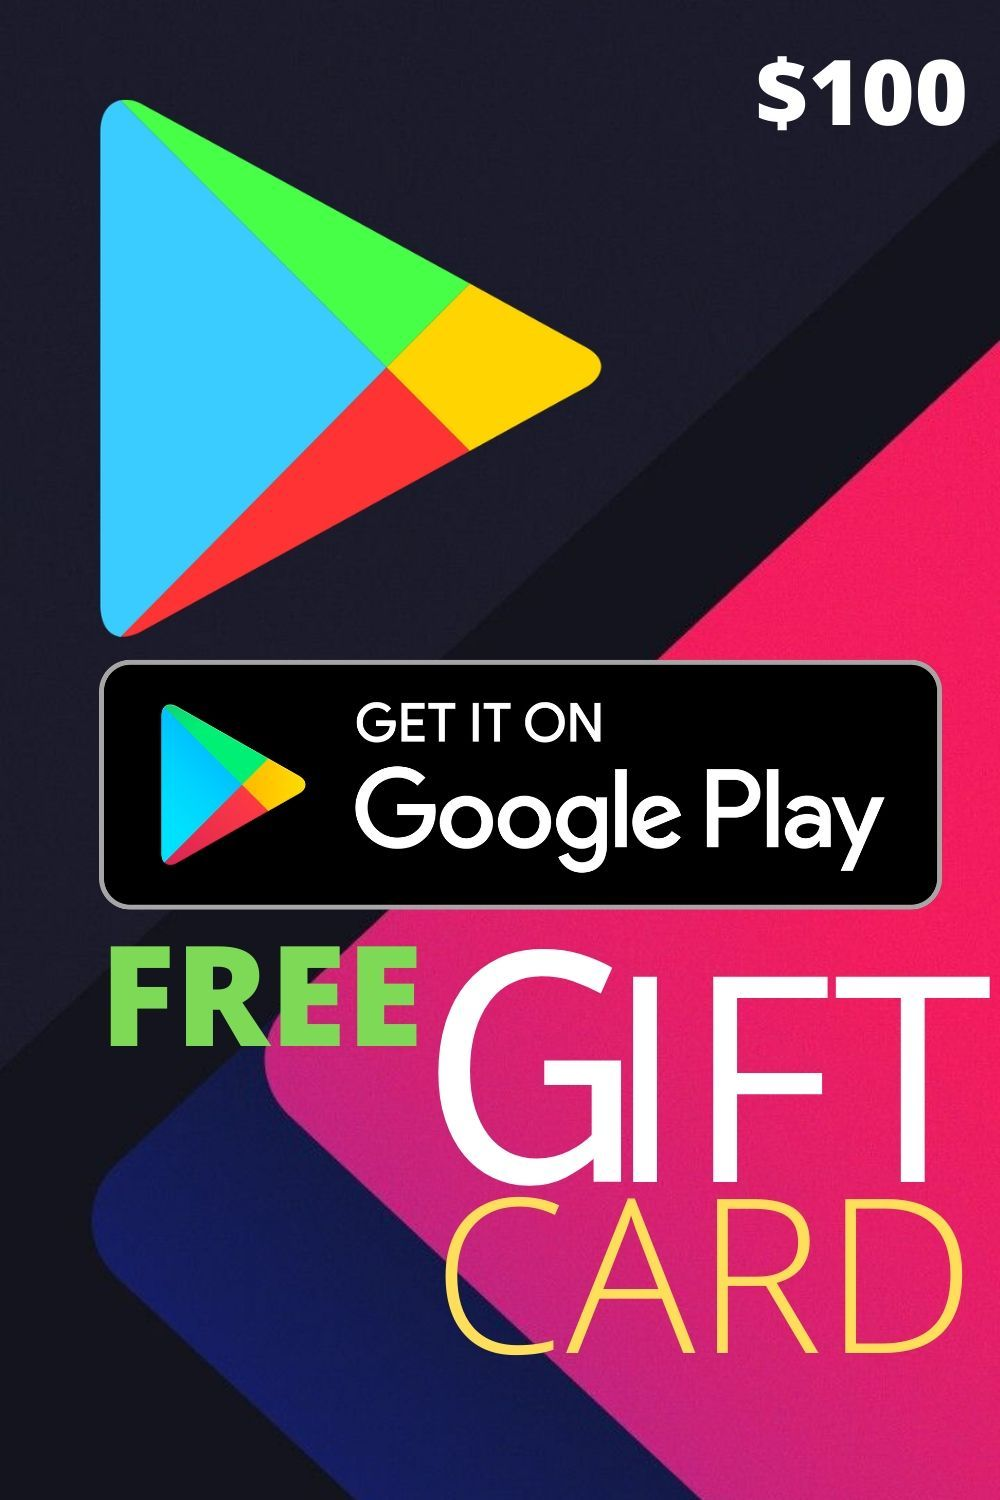 How To Add Money To Google Play Credit